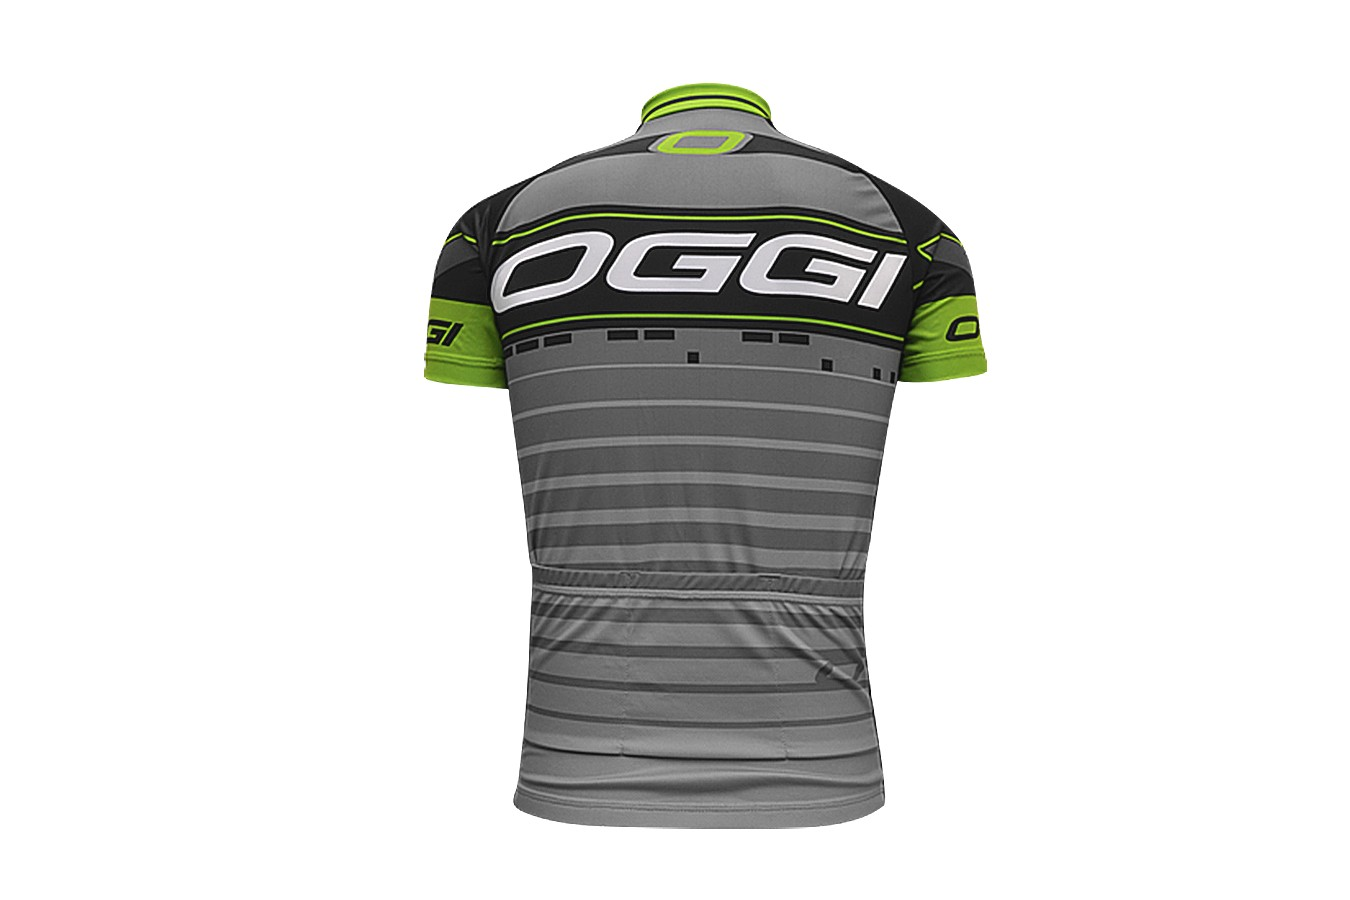 Camisa Ciclista Big Wheel - Oggi